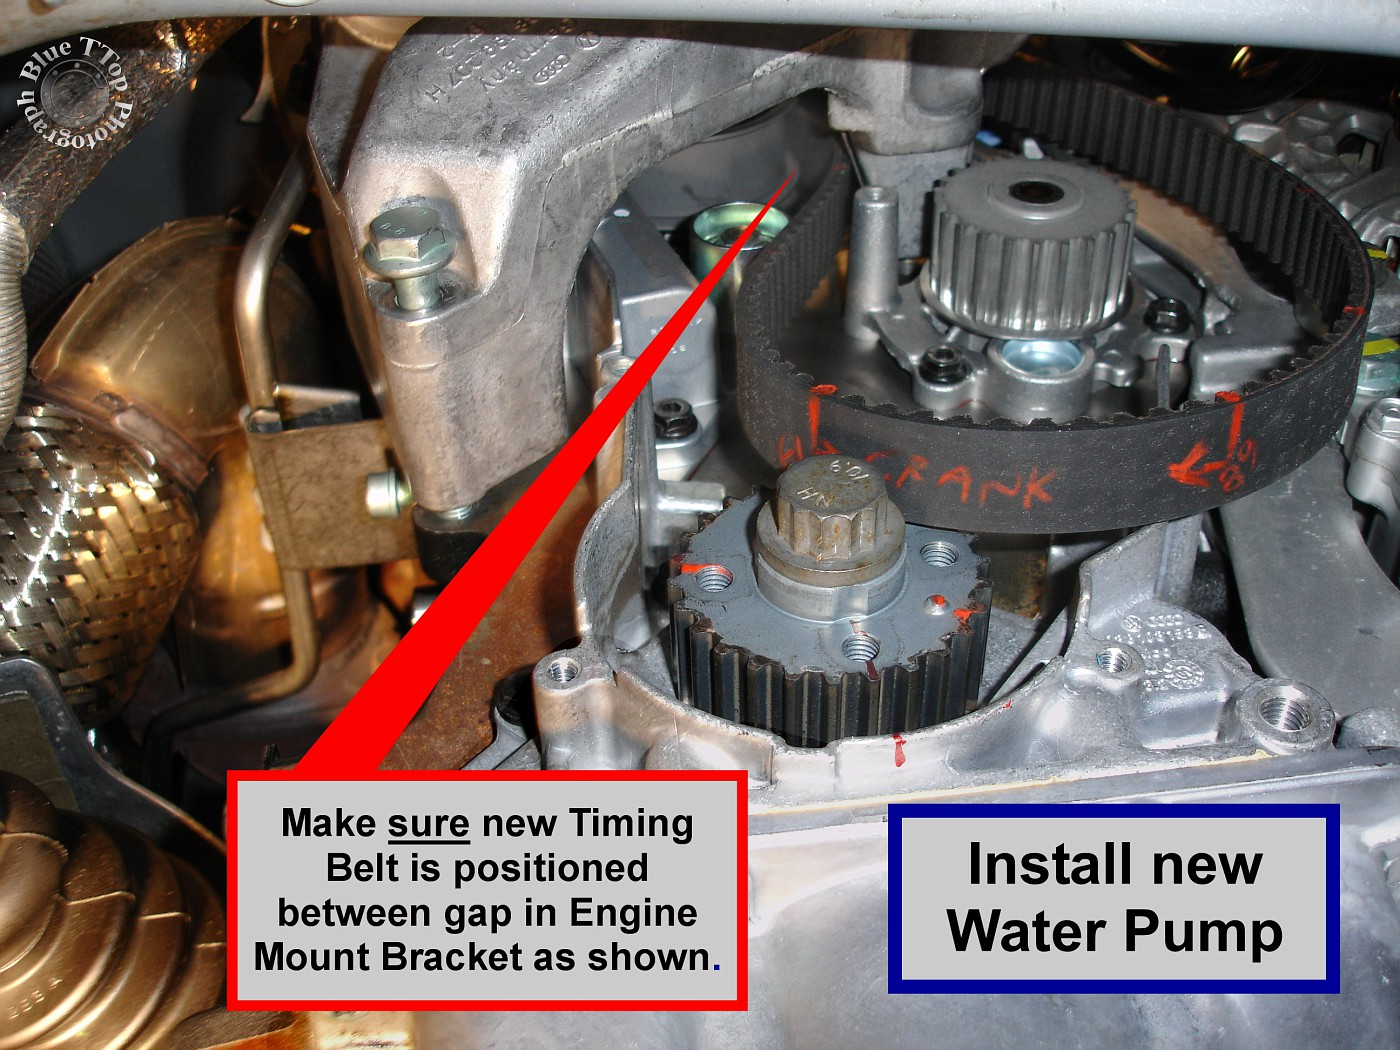 Make sure the O-Ring does not get caught. Install existing 3 Water Pump  bolts (10mm). Tightening torque is listed as as 11 ft-lb. Bentley Manual  page 19-10.